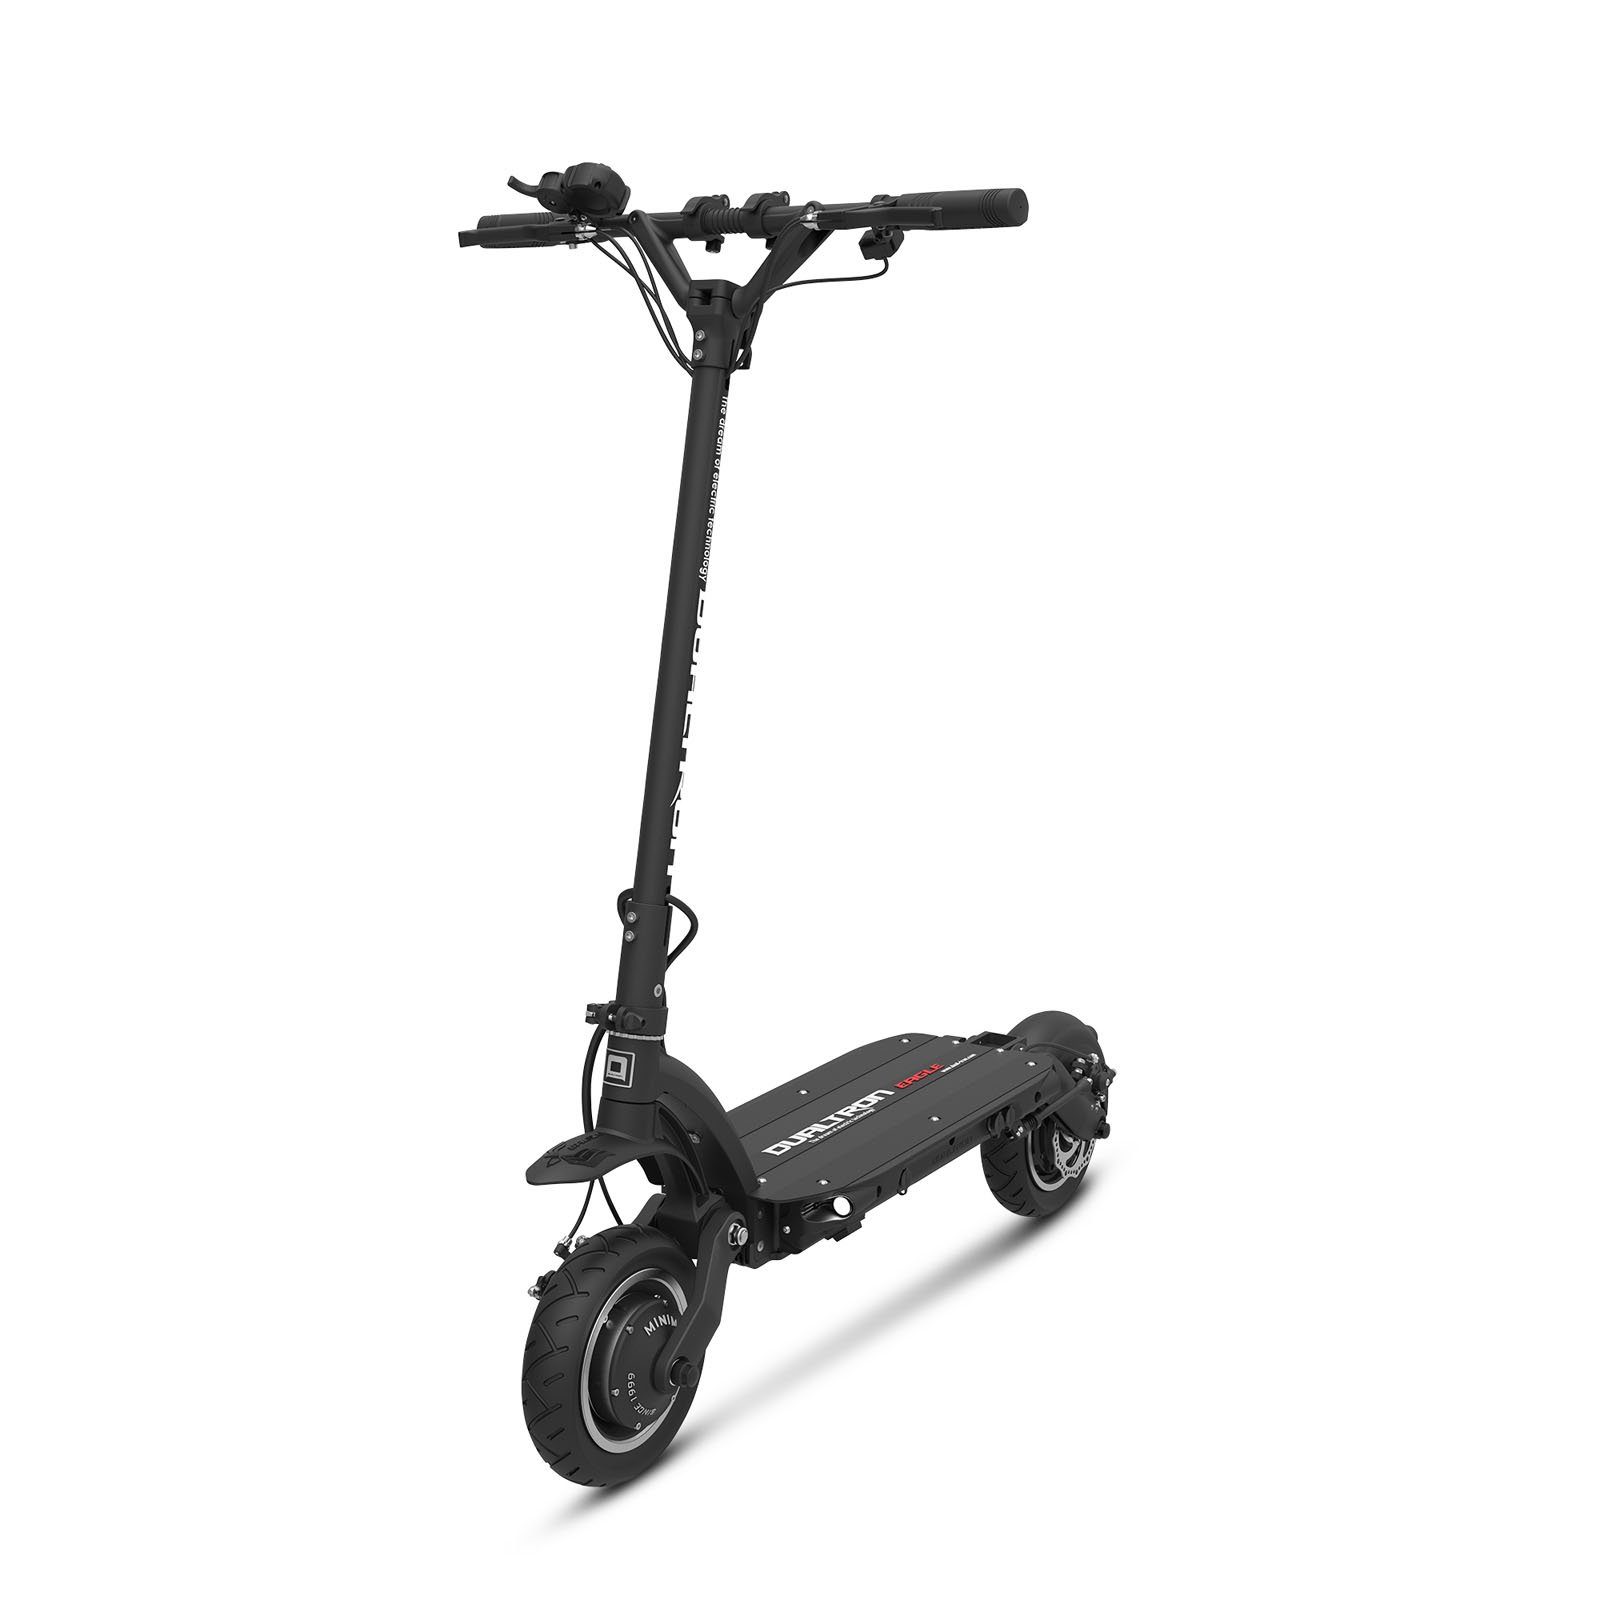 Dualtron Eagle Pro Electric Scooter Review